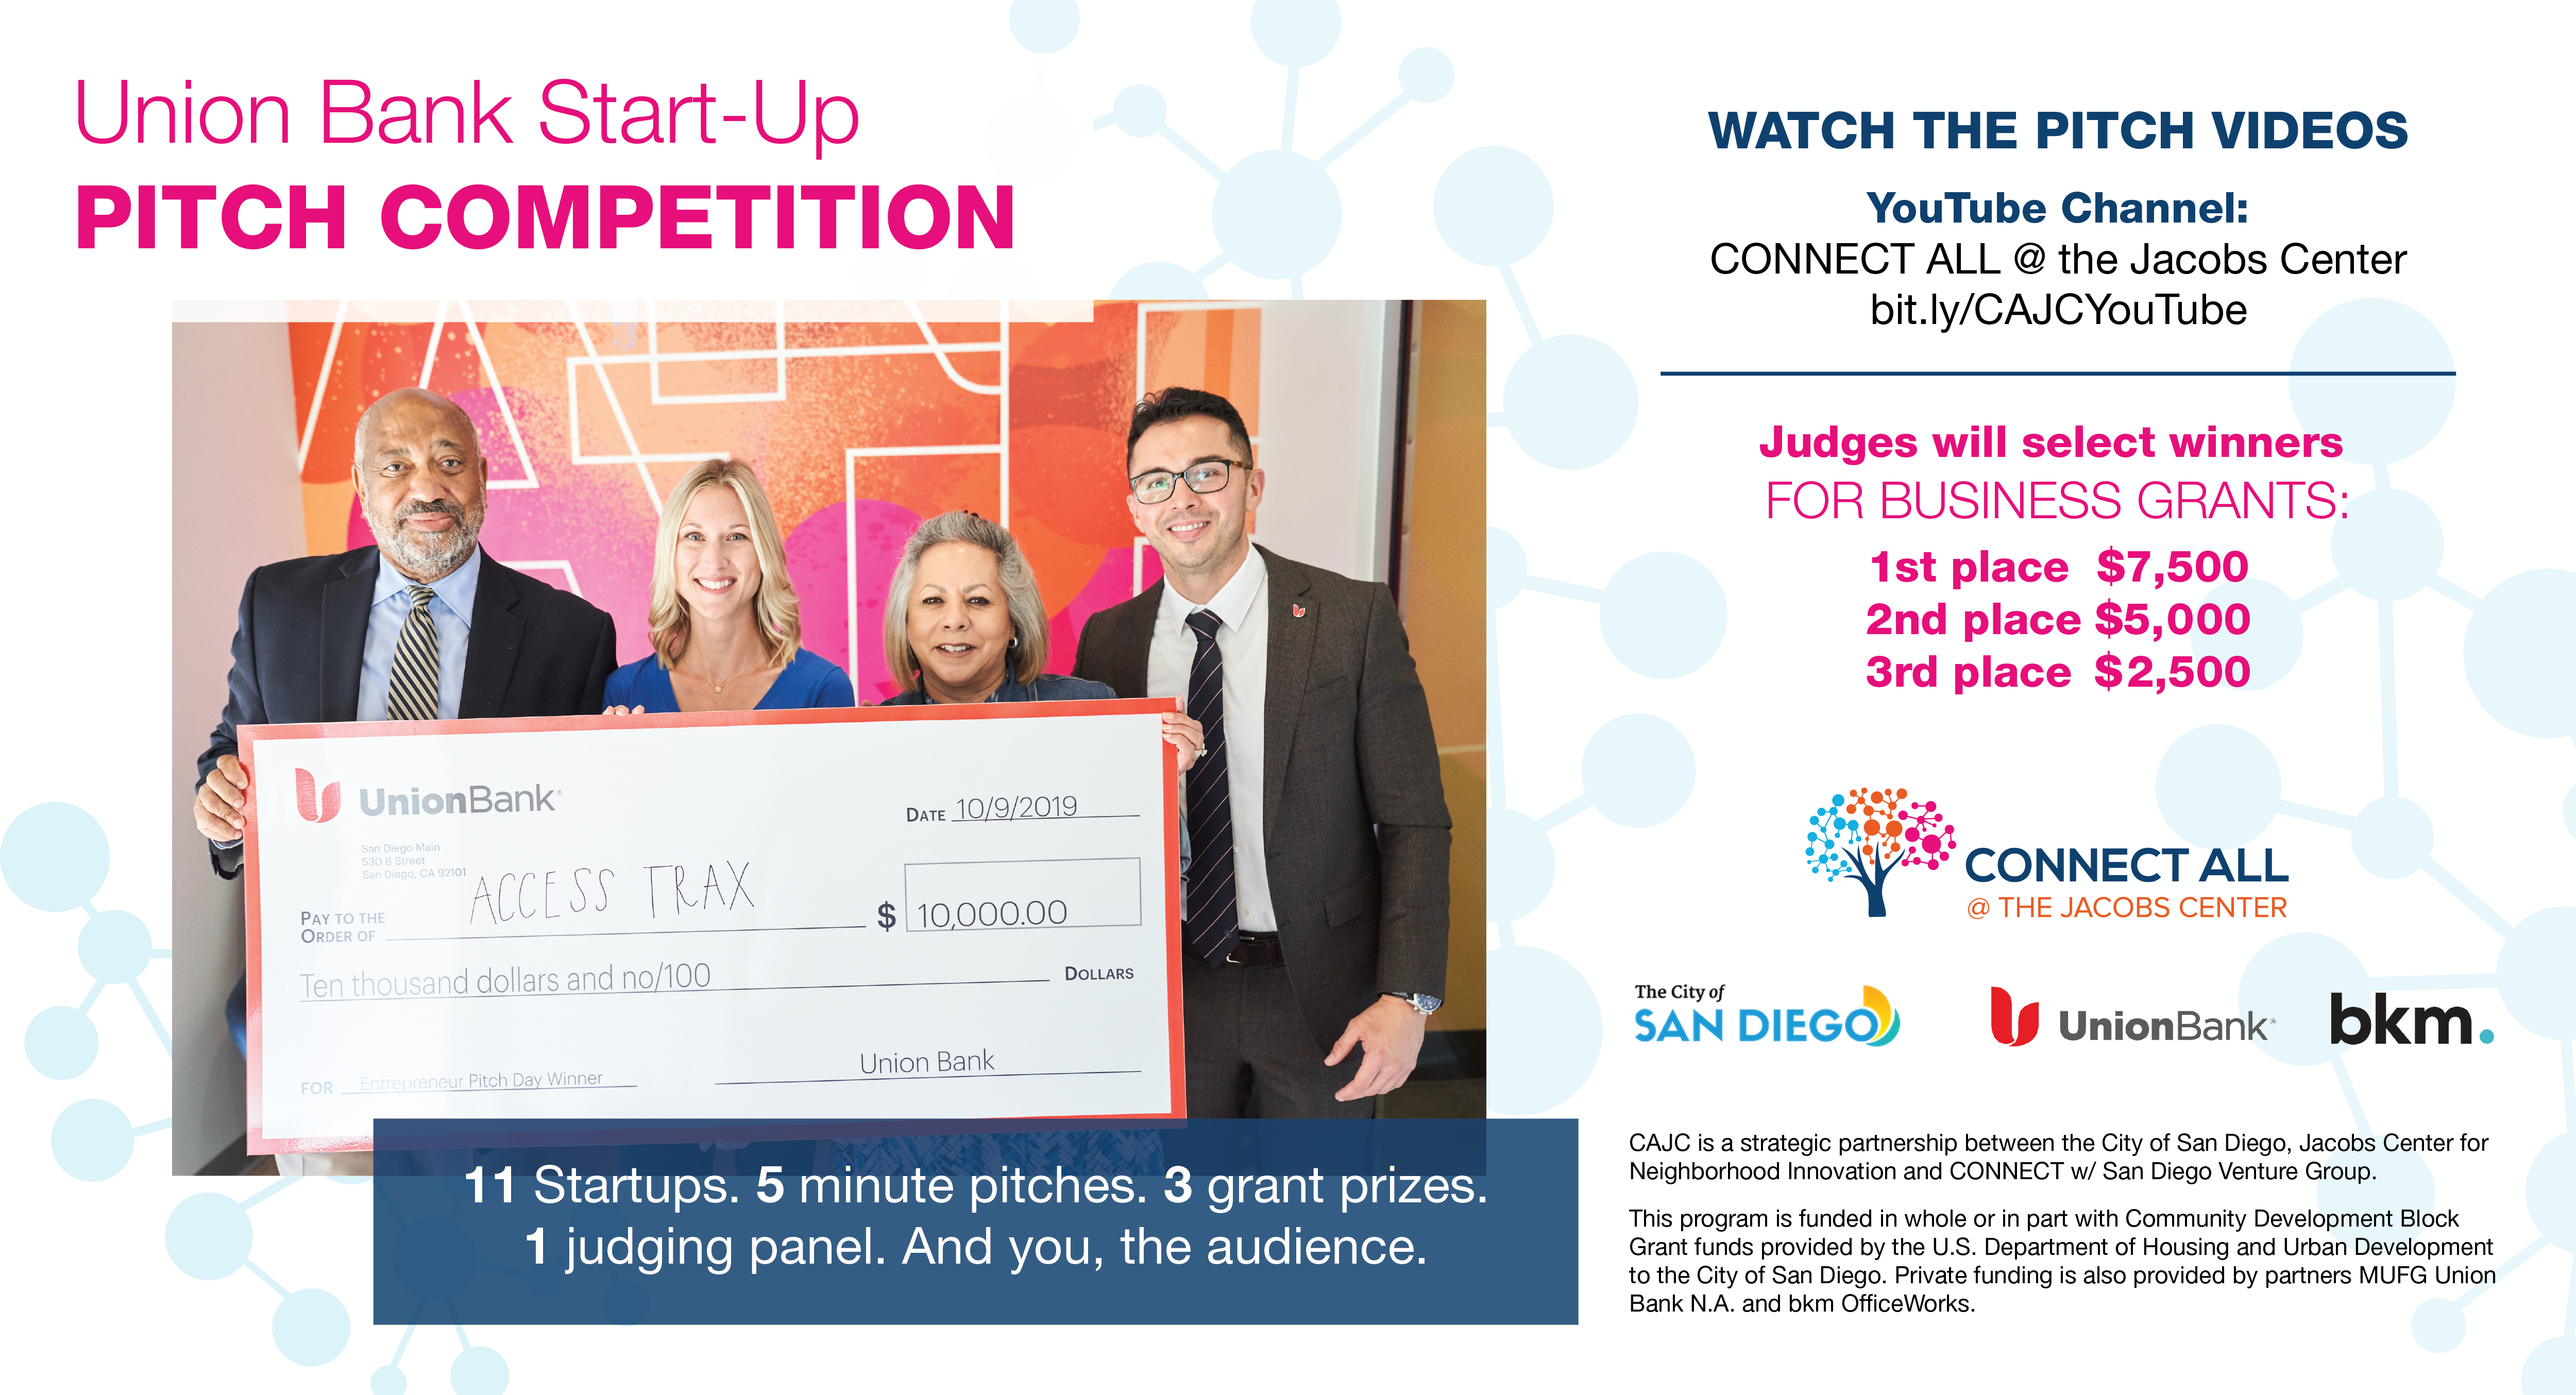 Watch the Pitch Videos on the CONNECT ALL @ the Jacobs Center YouTube chanel at bit.ly/CAJCYouTube. Judges will select winners for business grants. First place gets $7,500. Second place gets $5,000. Third place gets $2,500.